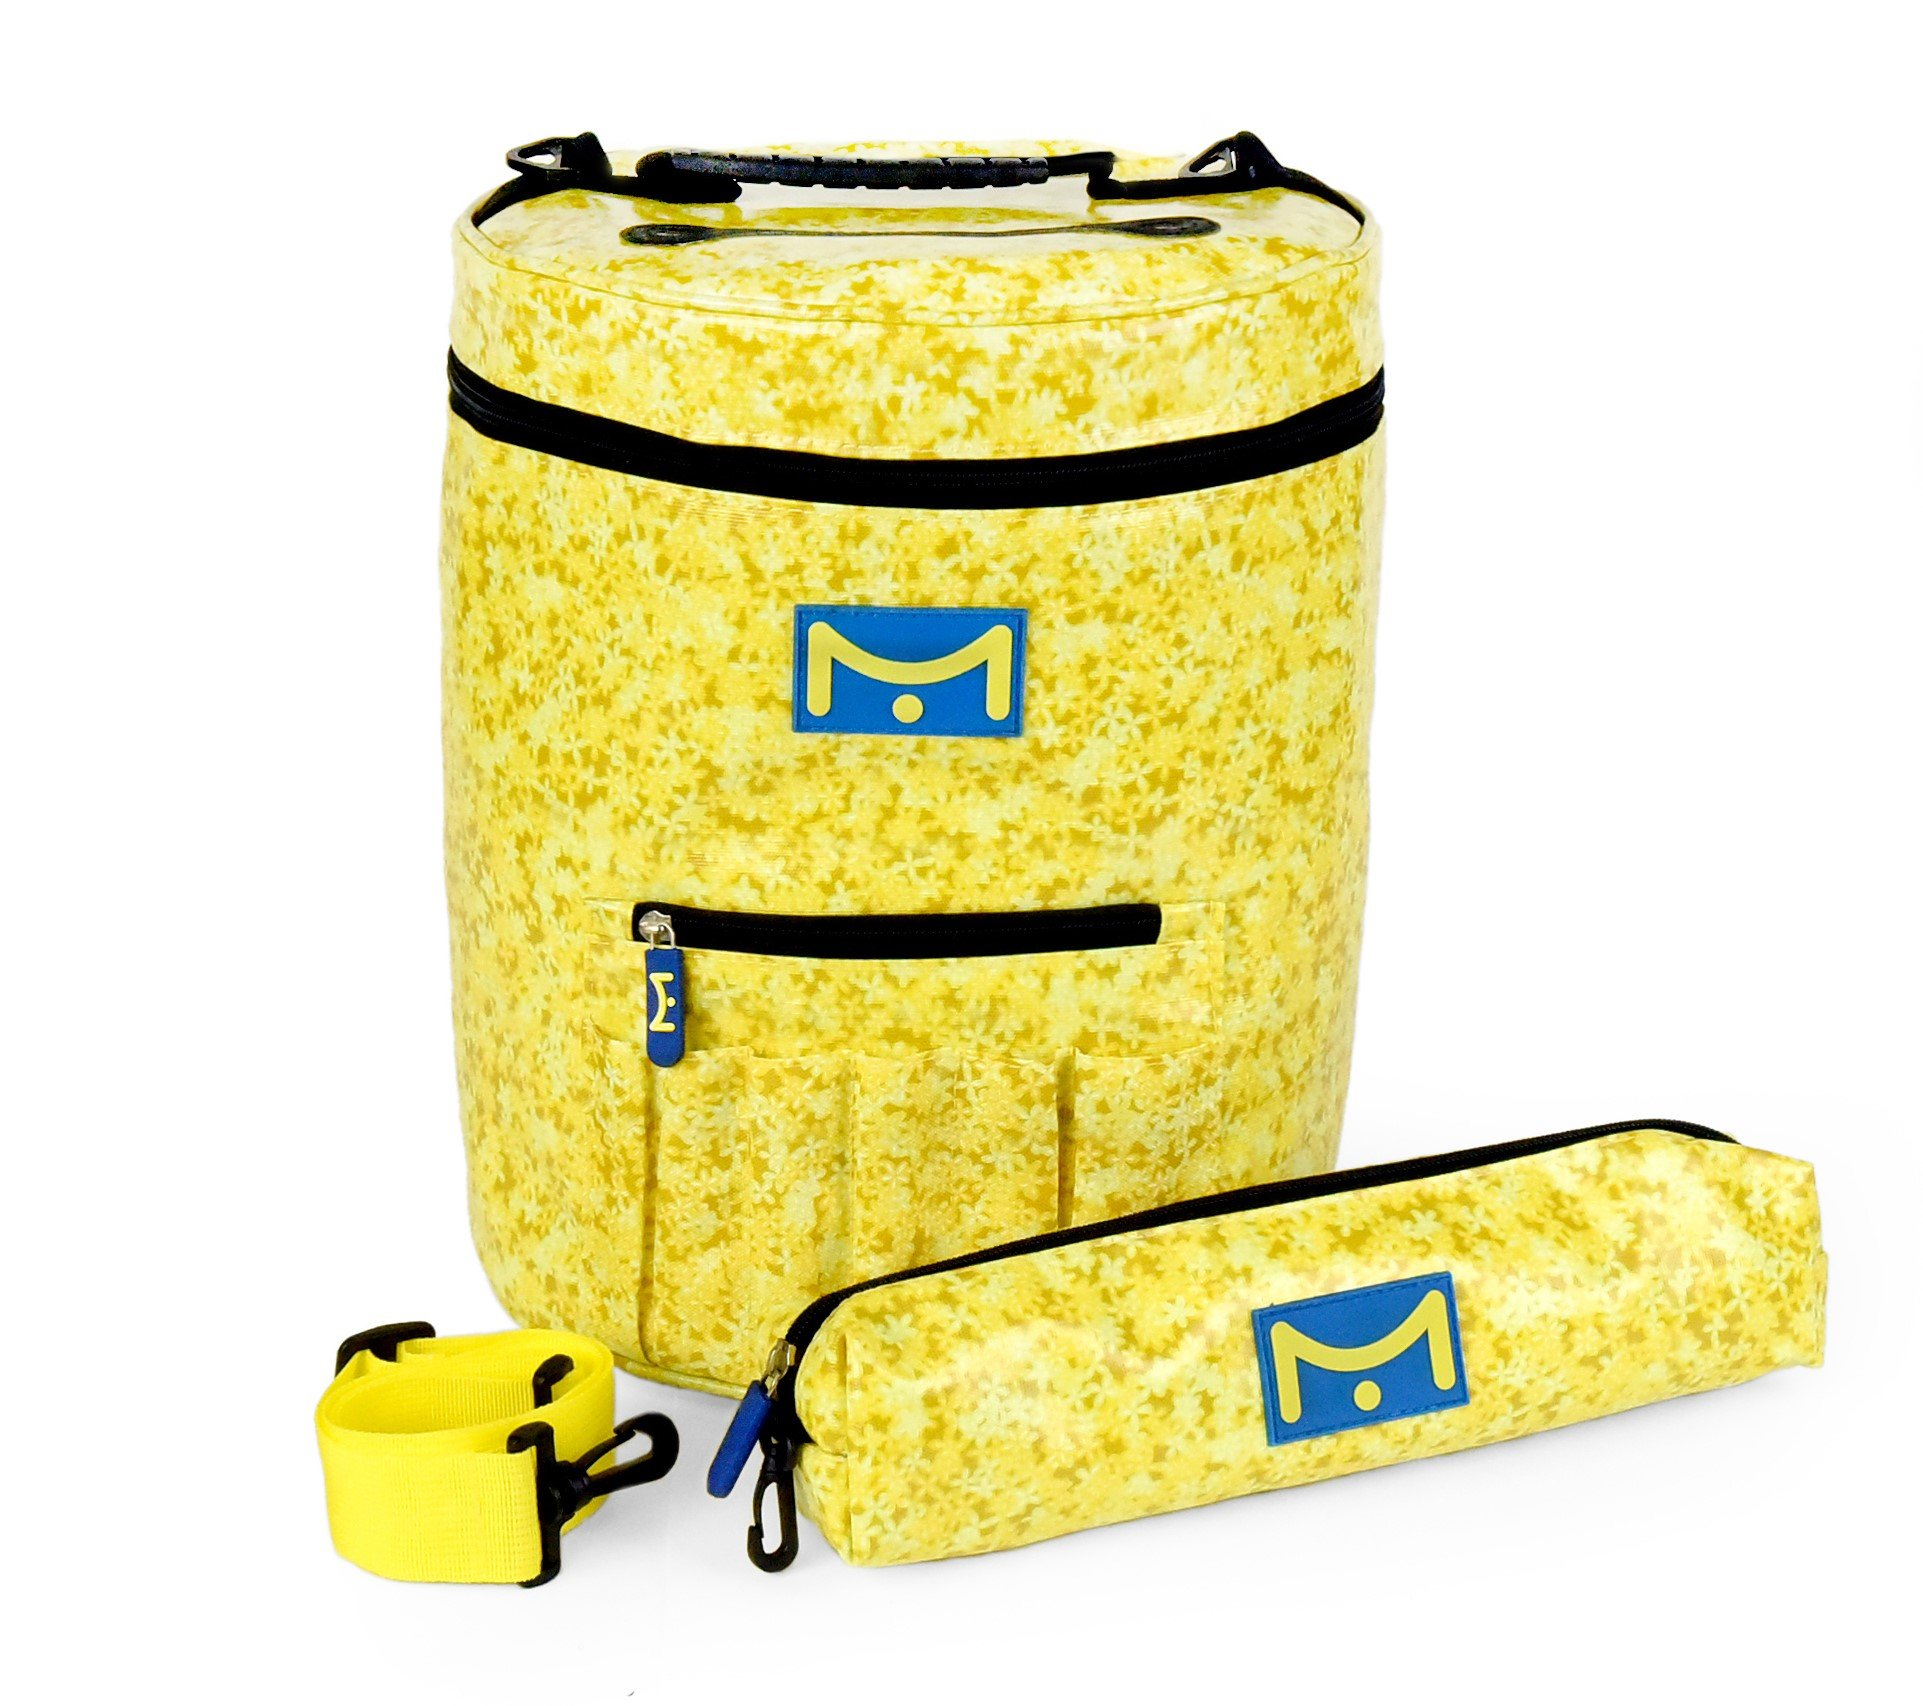 Mira HandCrafts Large Knitting Bag for Ultimate Yarn Storage | Crochet Yarn Holder with Multiple Pockets, Slits on Top and 1 Extra Yarn Organizer for Your Knitting Accessories(Yellow)